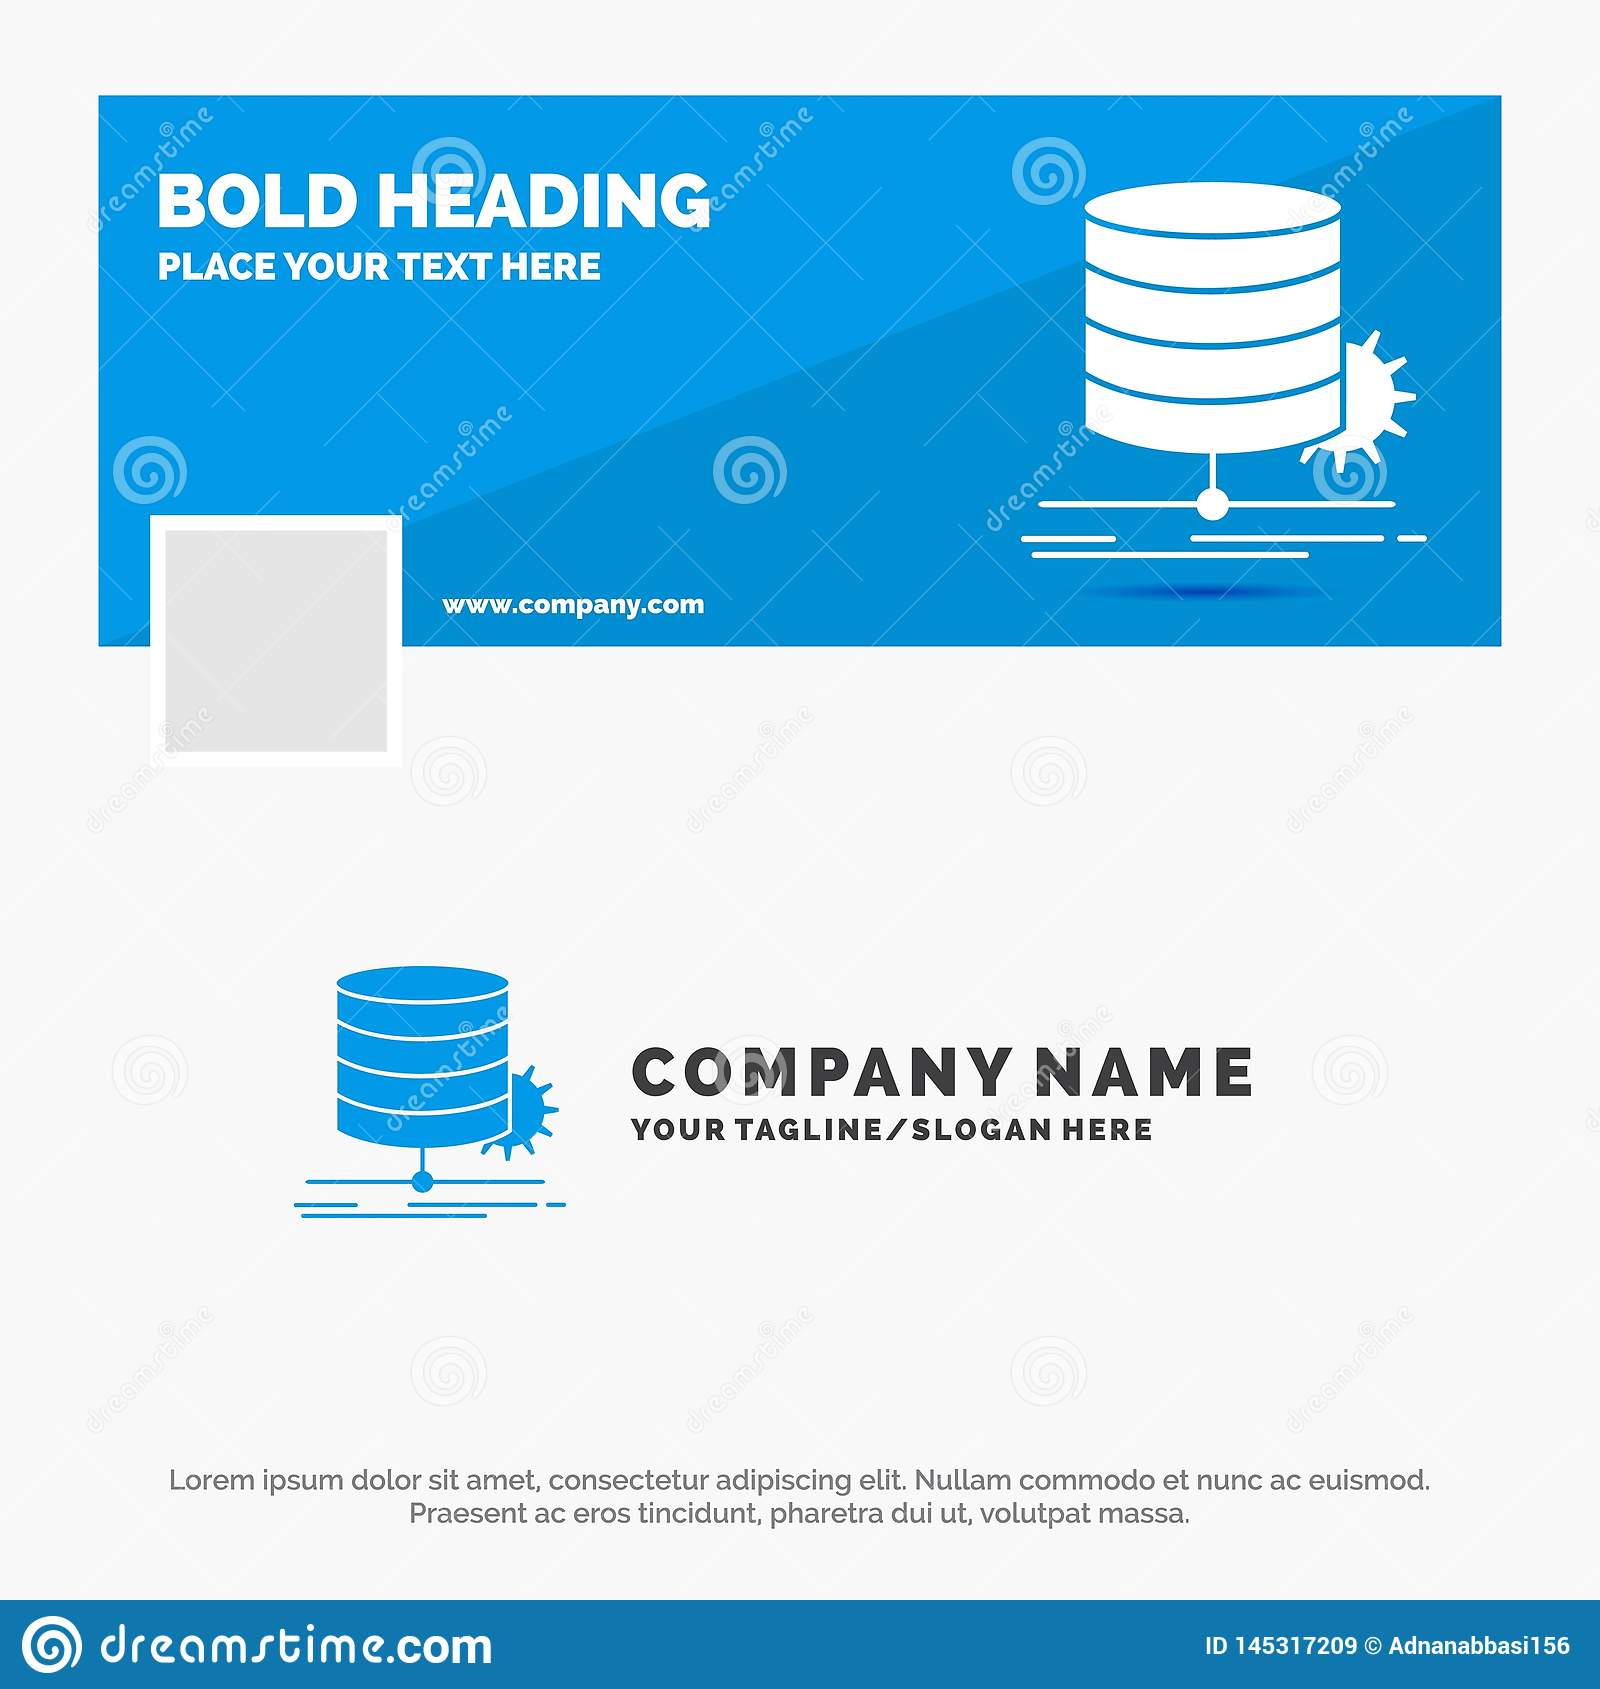 Blue Business Logo Template for Algorithm, chart, data, diagram, flow. Facebook Timeline Banner Design. vector web banner